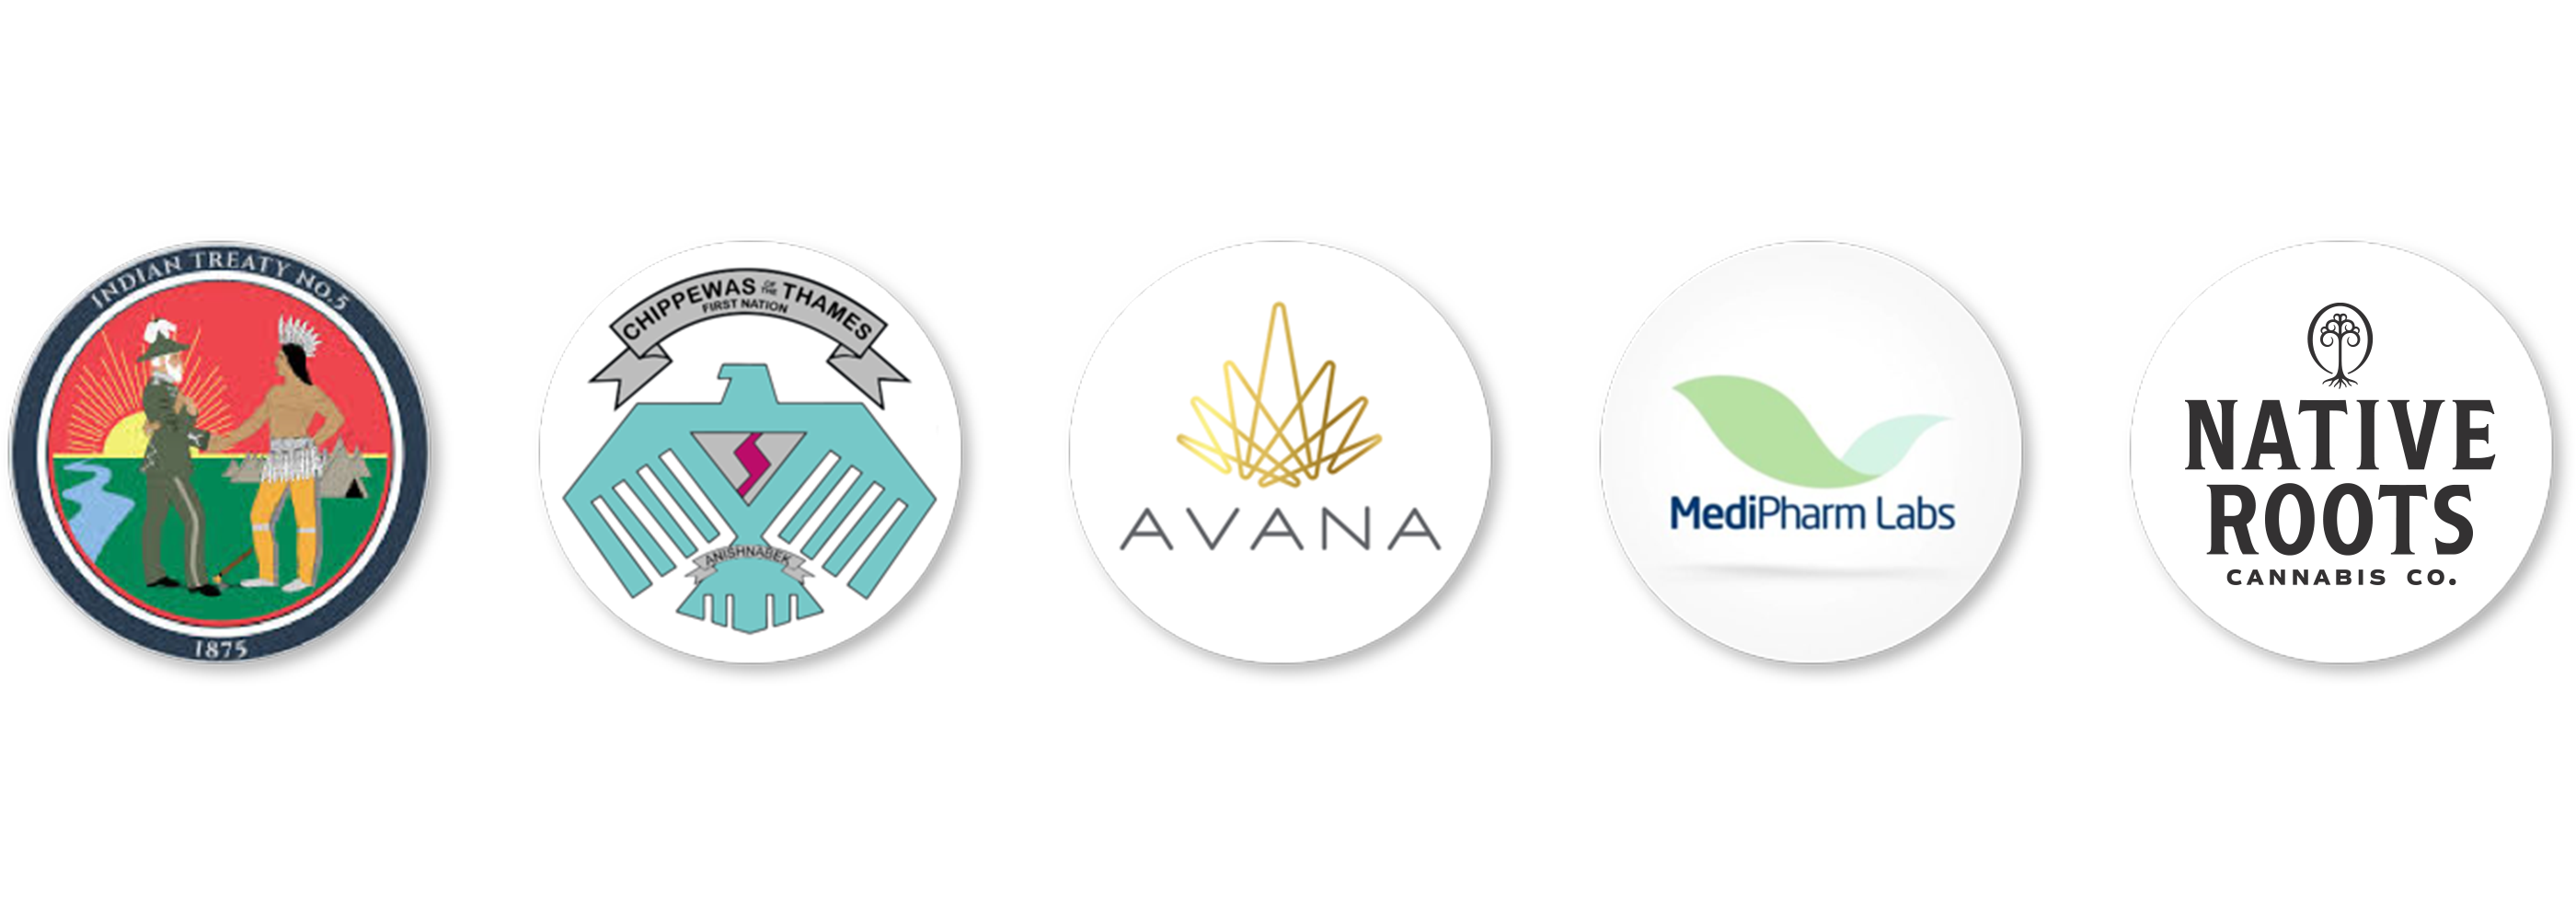 Garden Variety partners share our values, goals and commitment to Manitoba. Garden Variety is a partnership of the Fisher River Cree Nation, Chippewas of the Thames First Nation, Avana Canada Inc., MediPharm Labs, and Native Roots Dispensary.